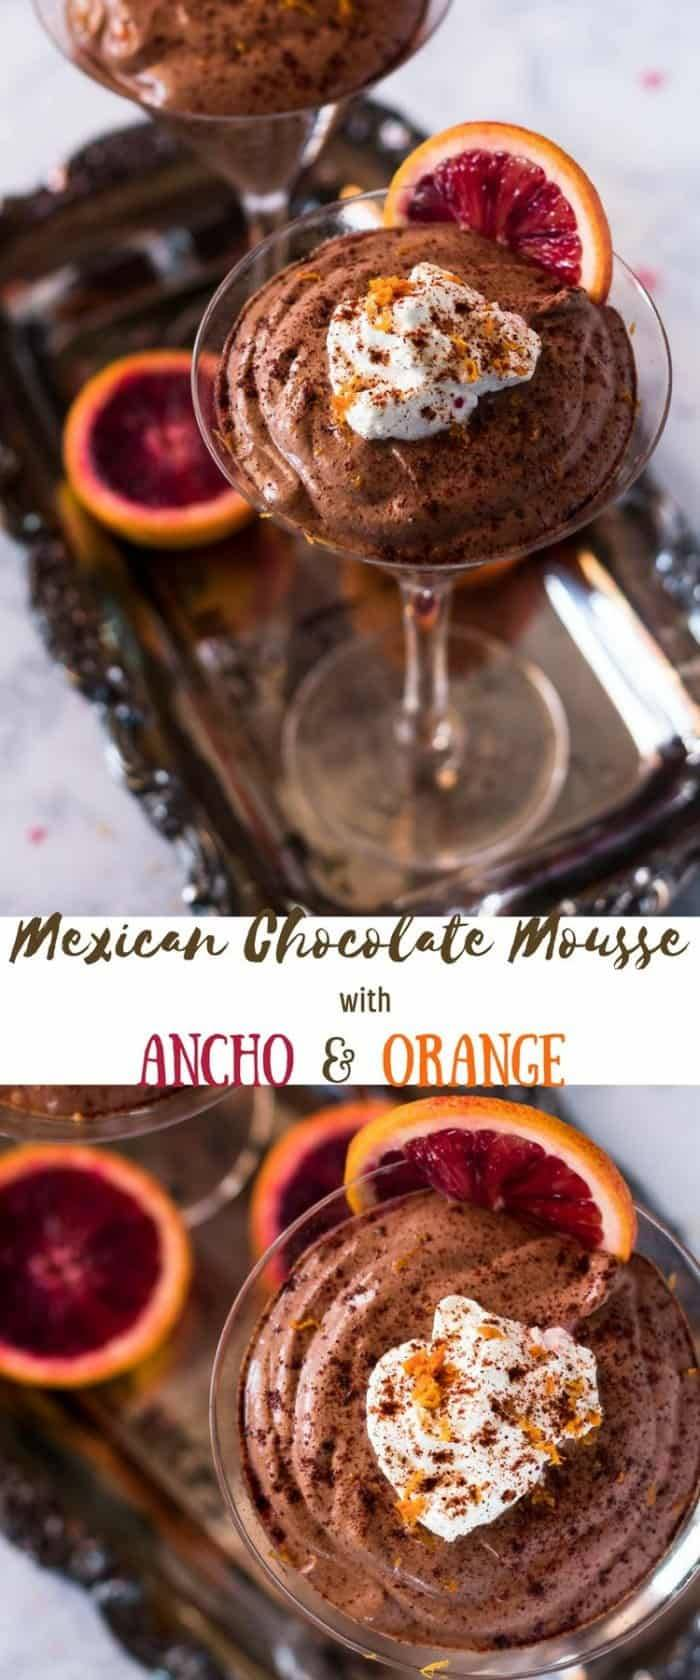 Mexican Chocolate Mousse in martini glasses with whipped cream on a silver tray.